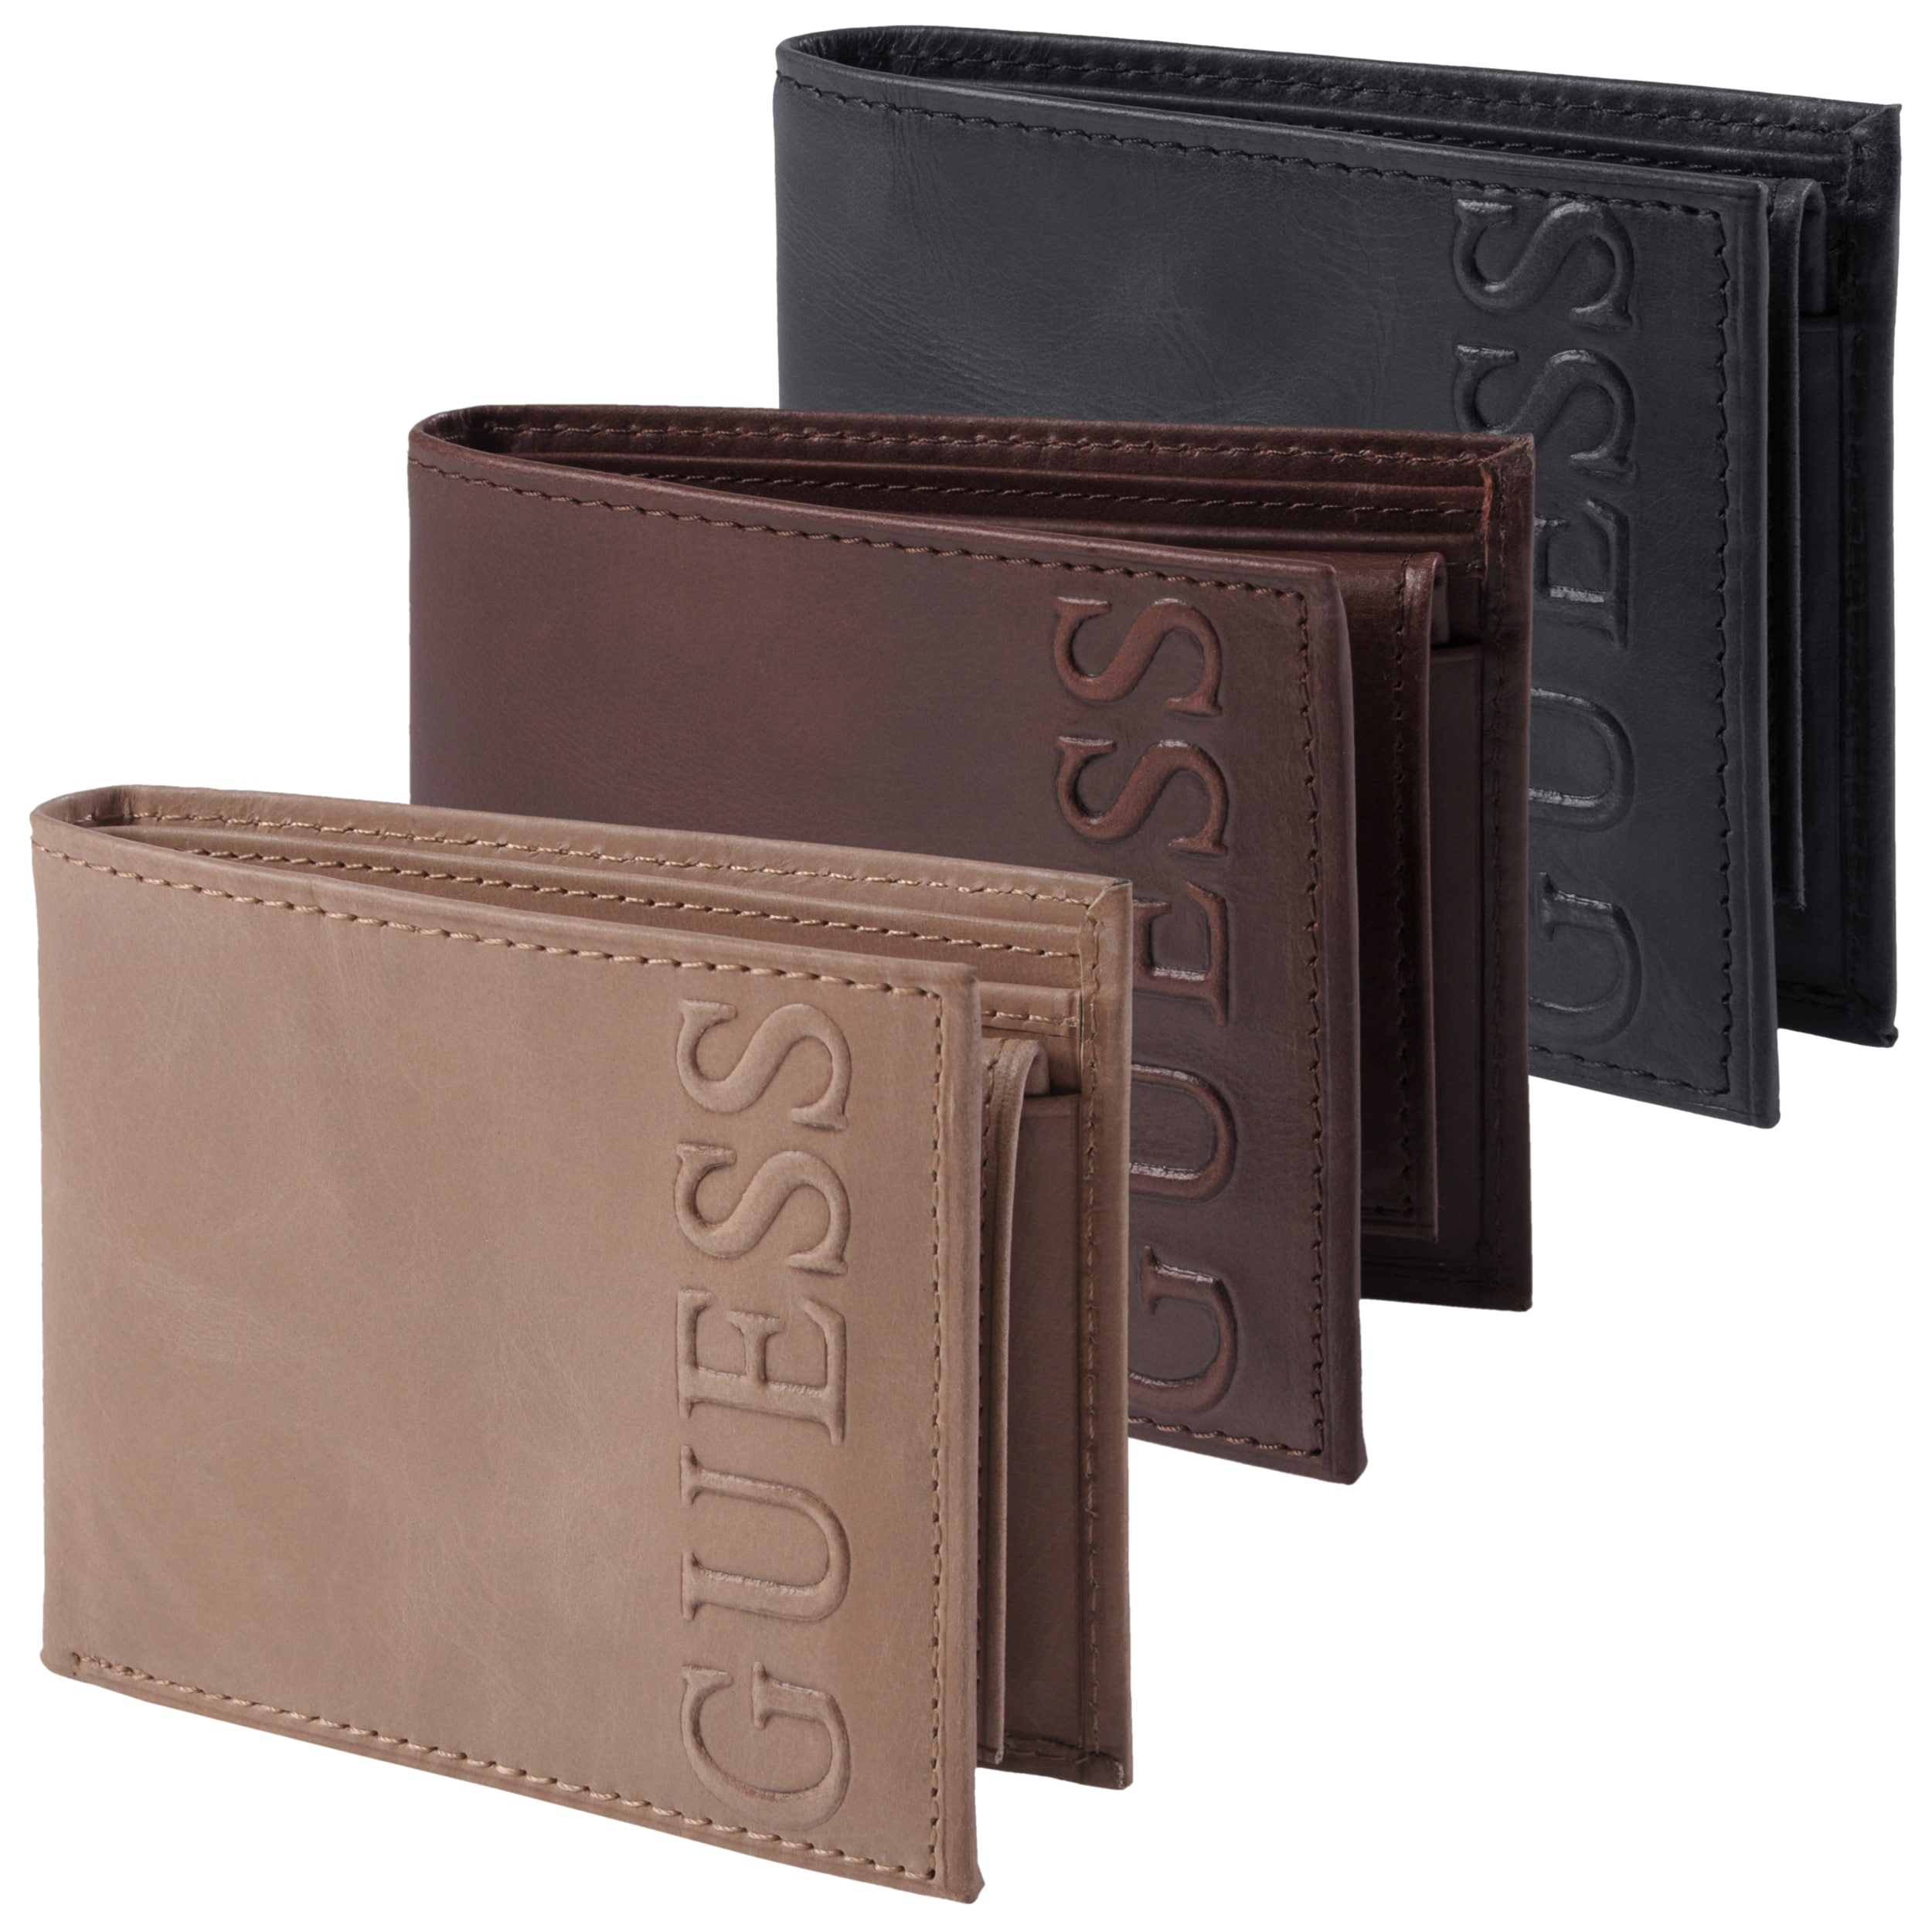 Guess Men's Distressed Embossed Bi-Fold Passcase Wallet